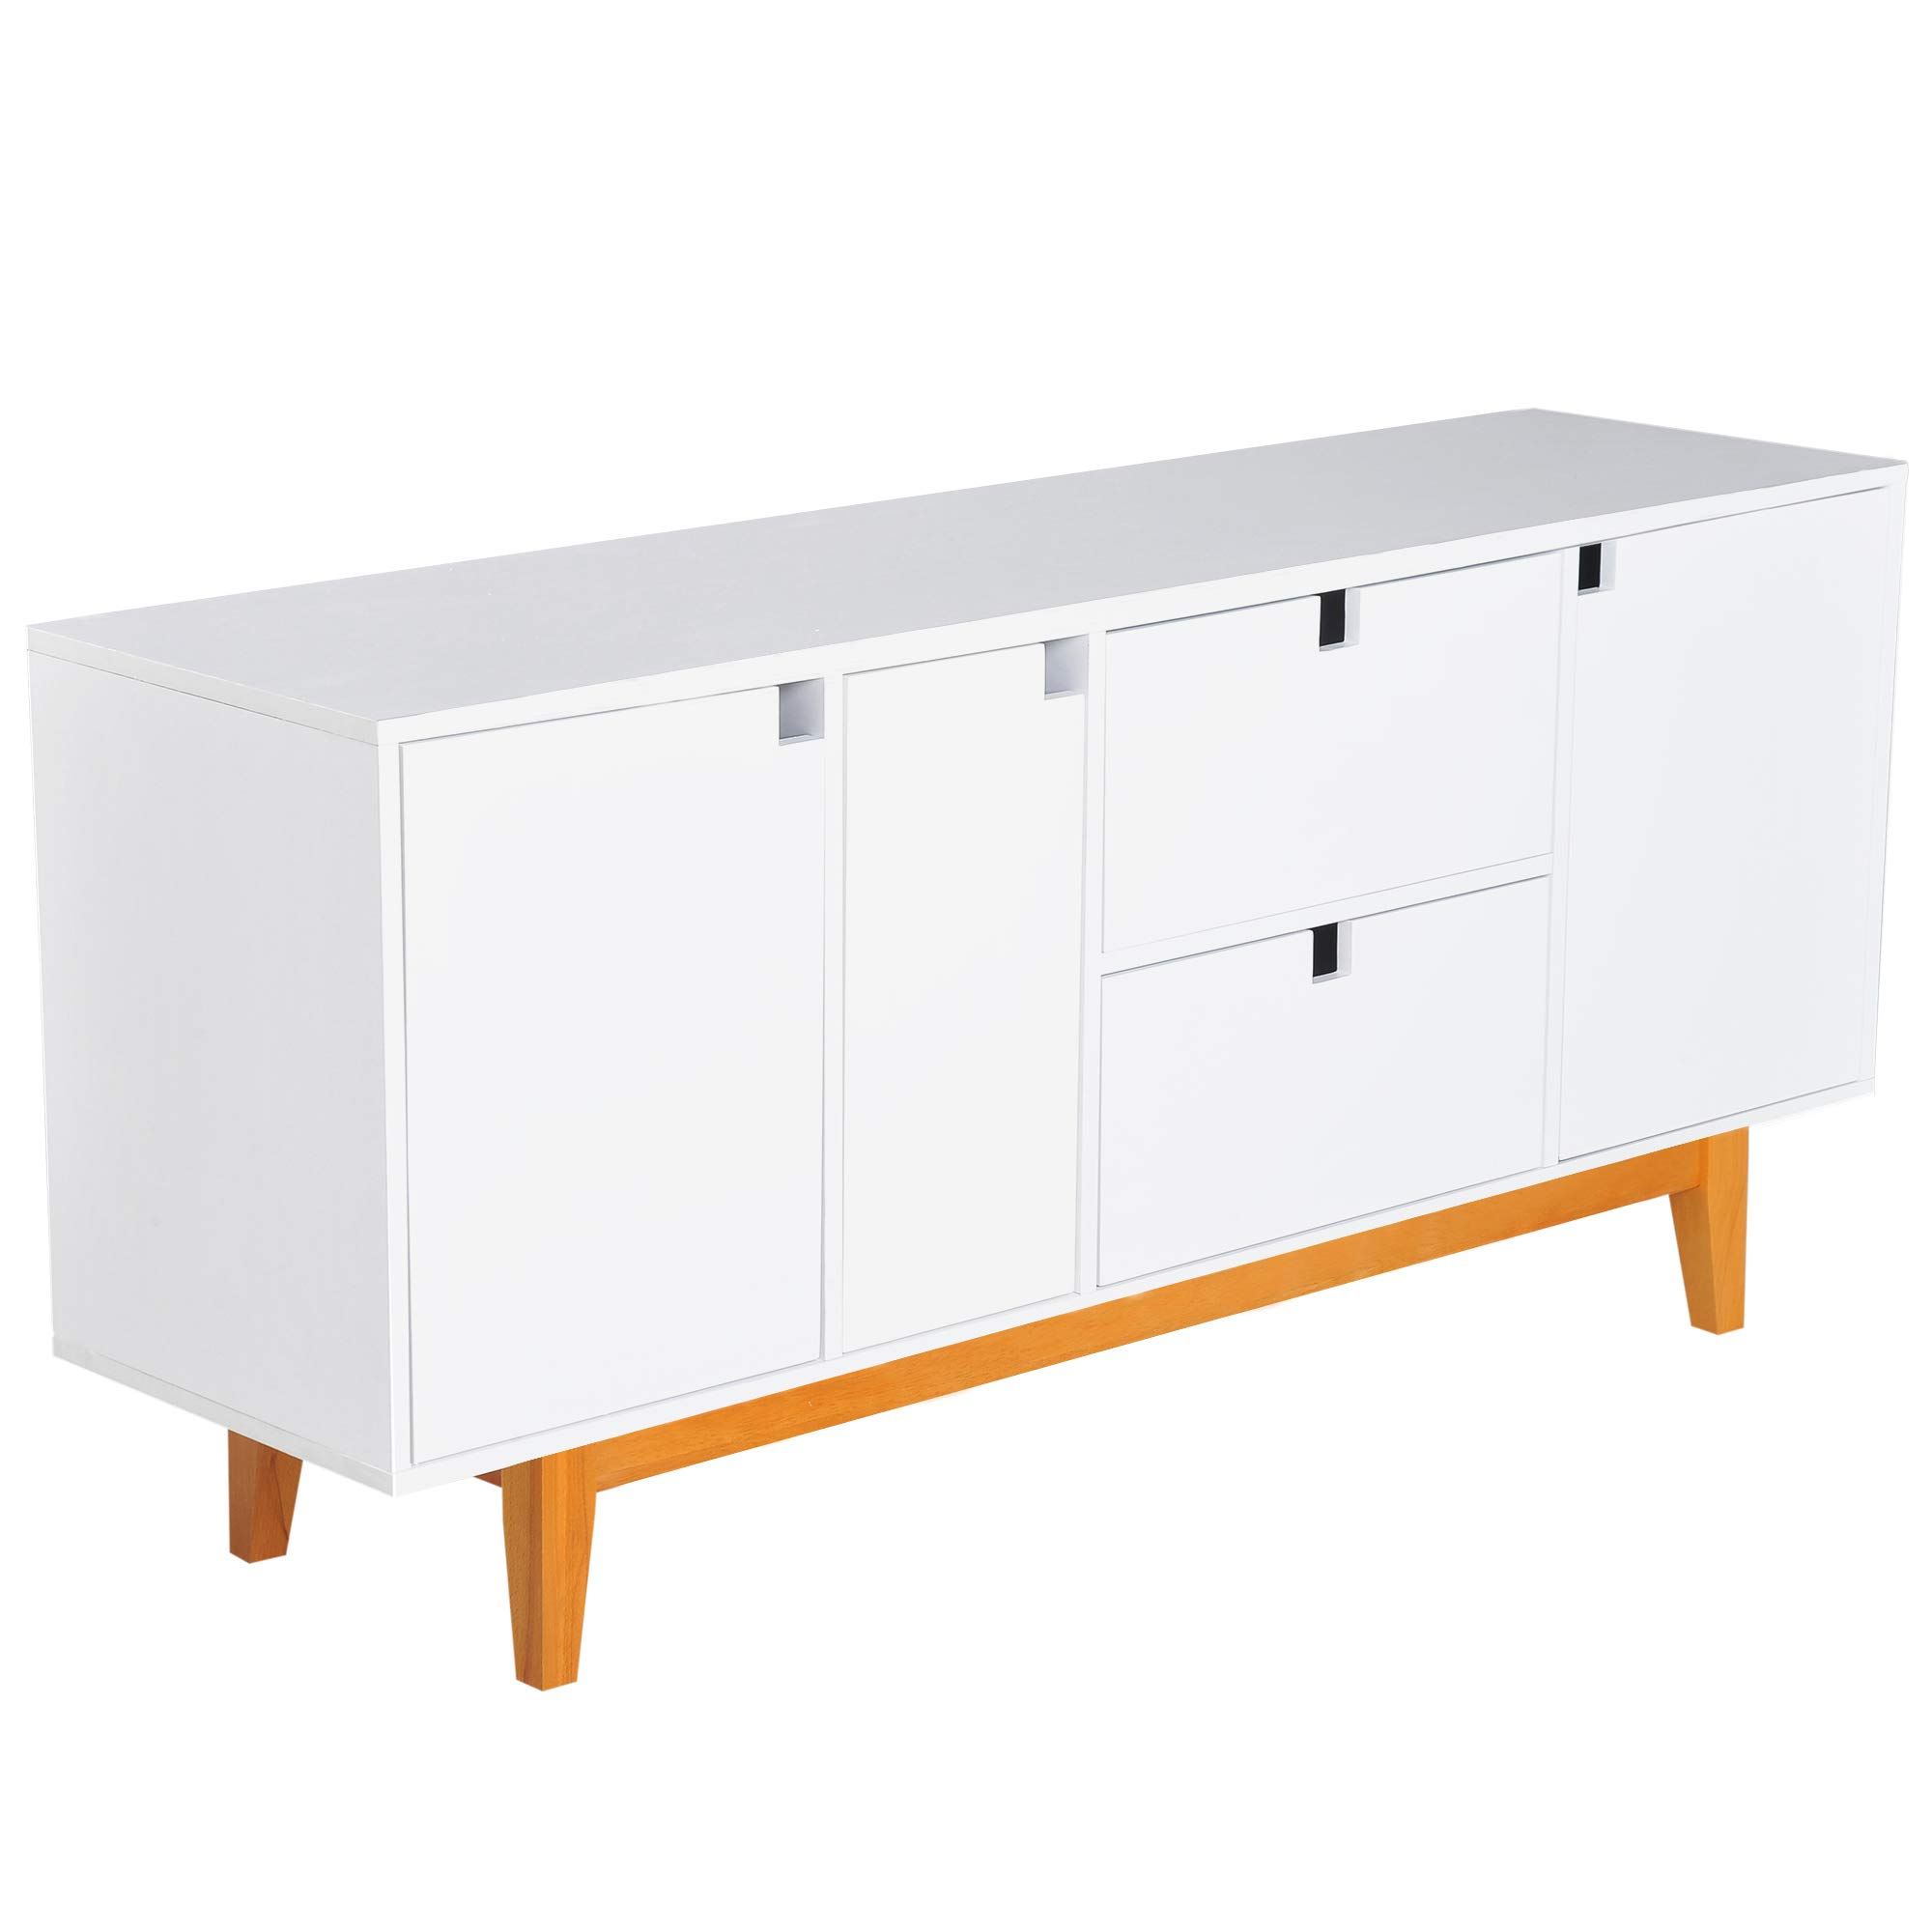 HOMCOM 57'' Two Tone Contemporary Sideboard Buffet Table Storage Cabinet - White